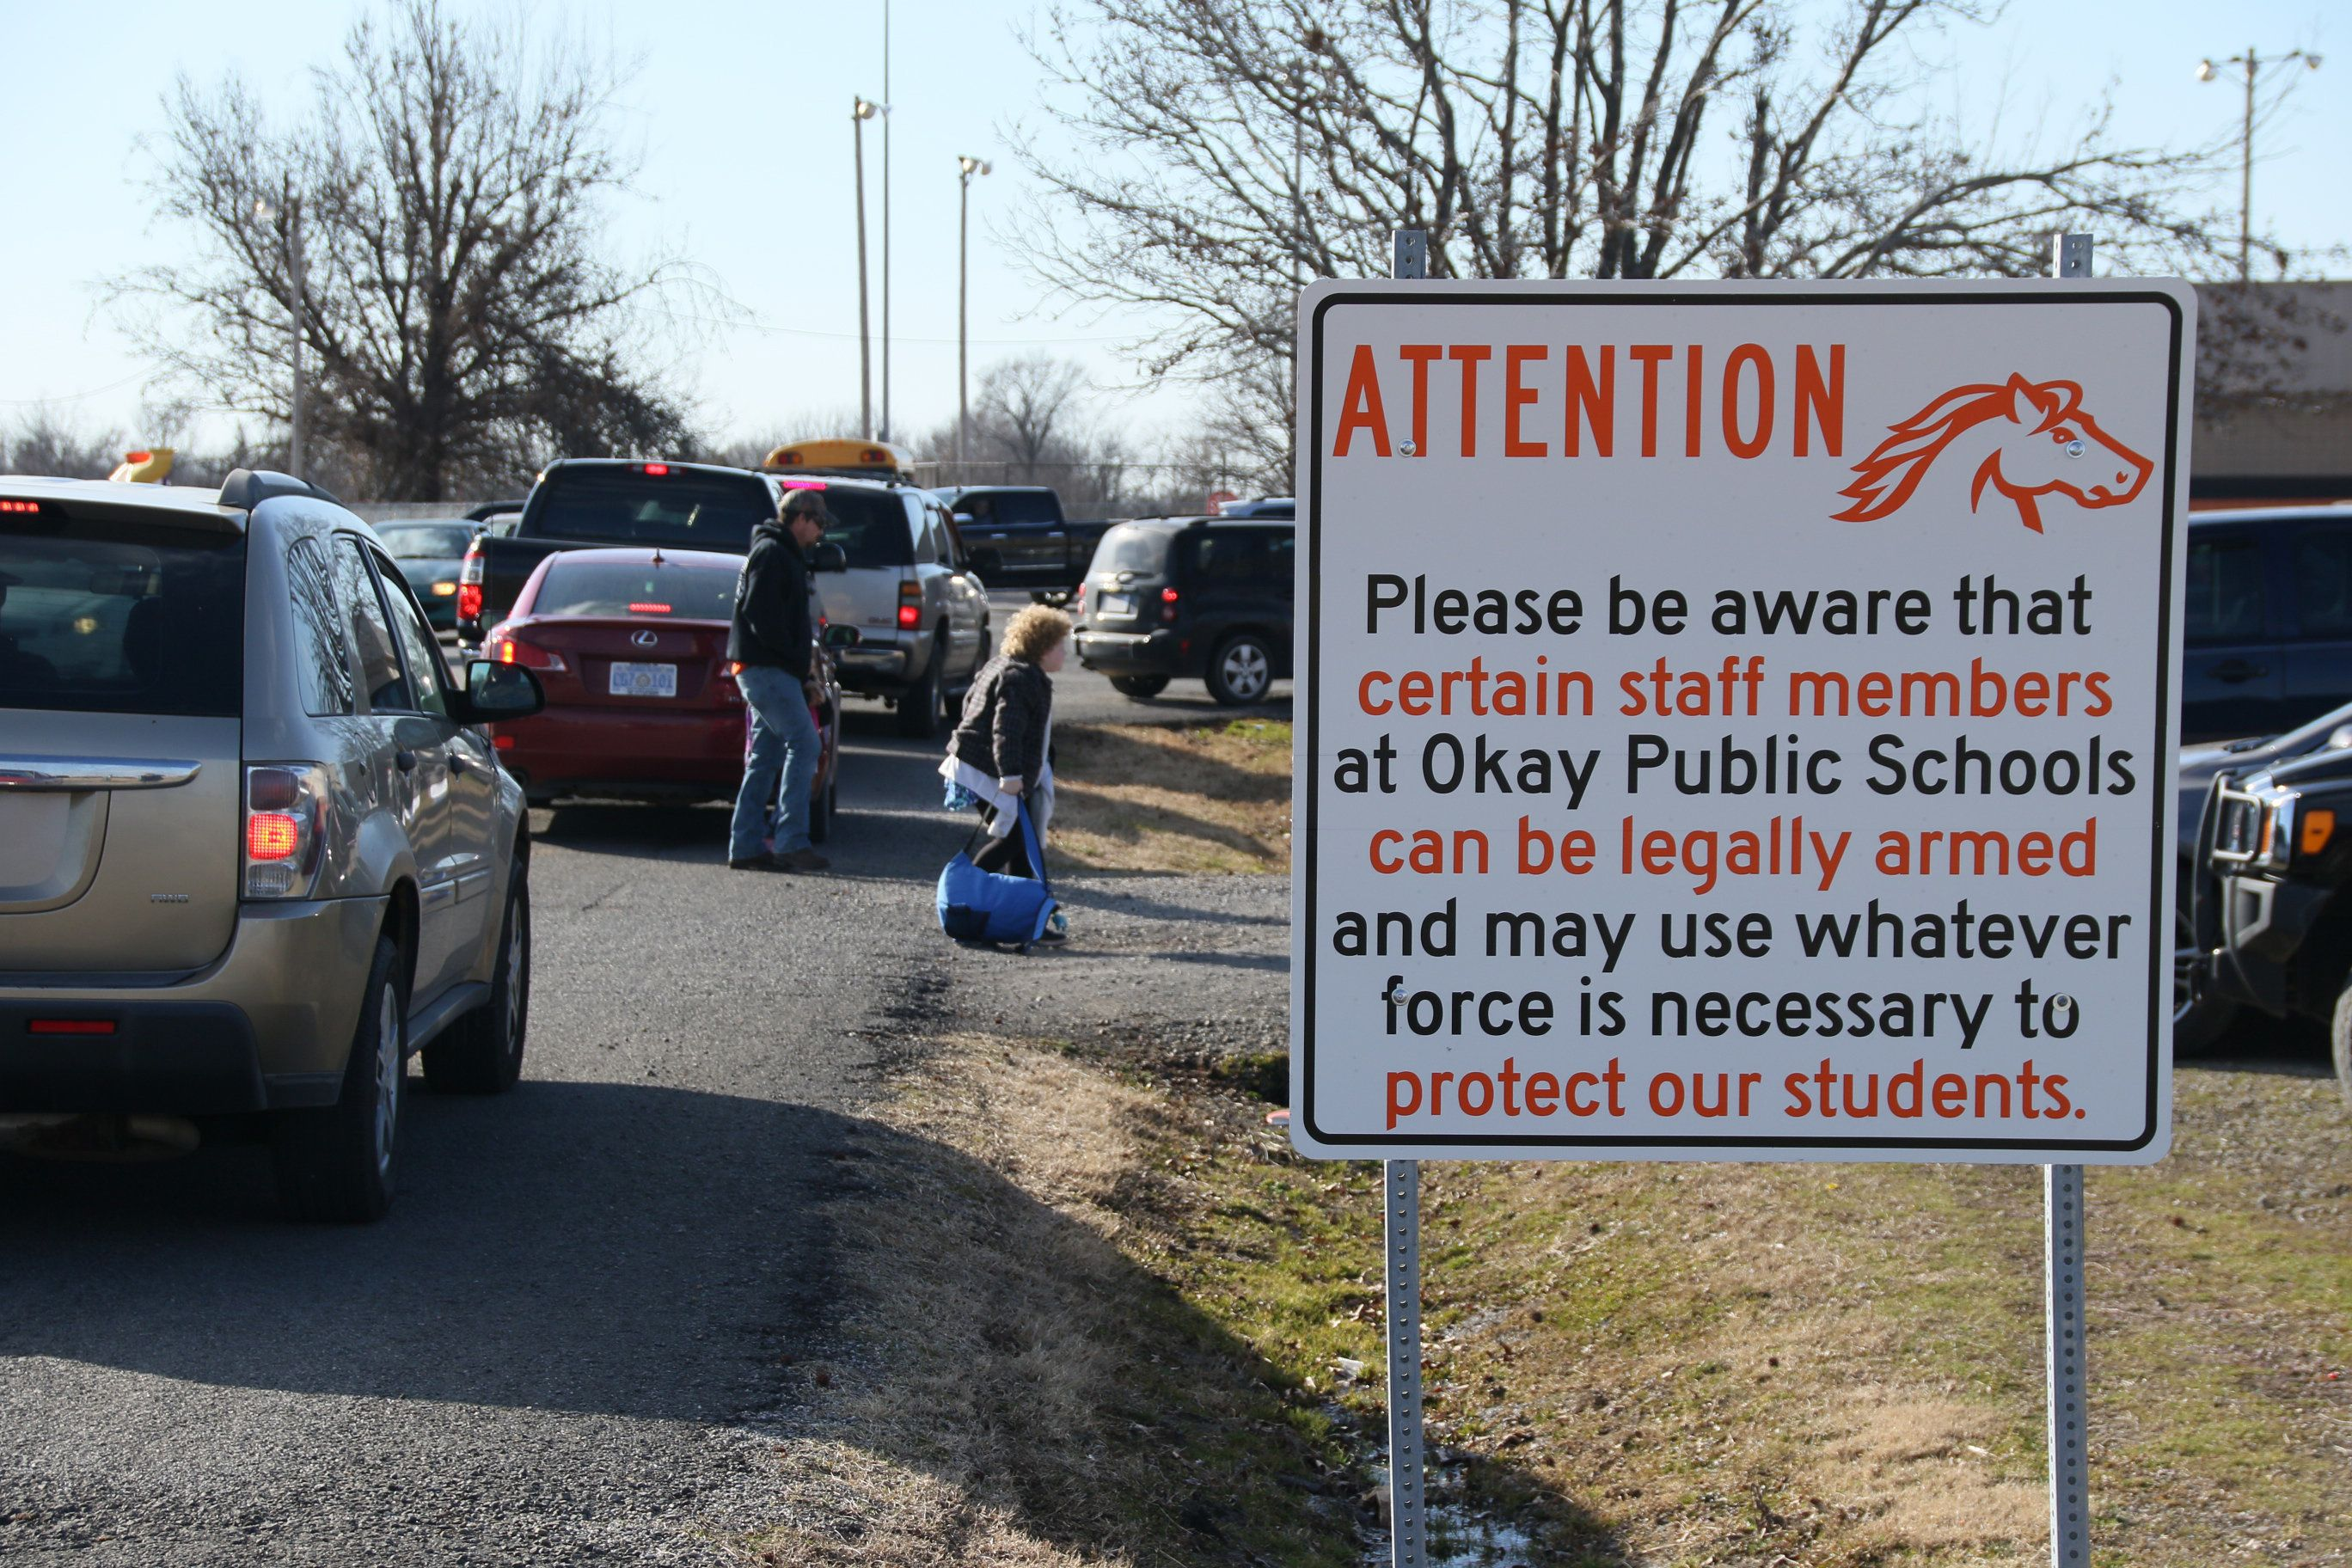 New signs posted on the grounds of Okay Public Schools in Oklahoma warn that staff members may be armed.